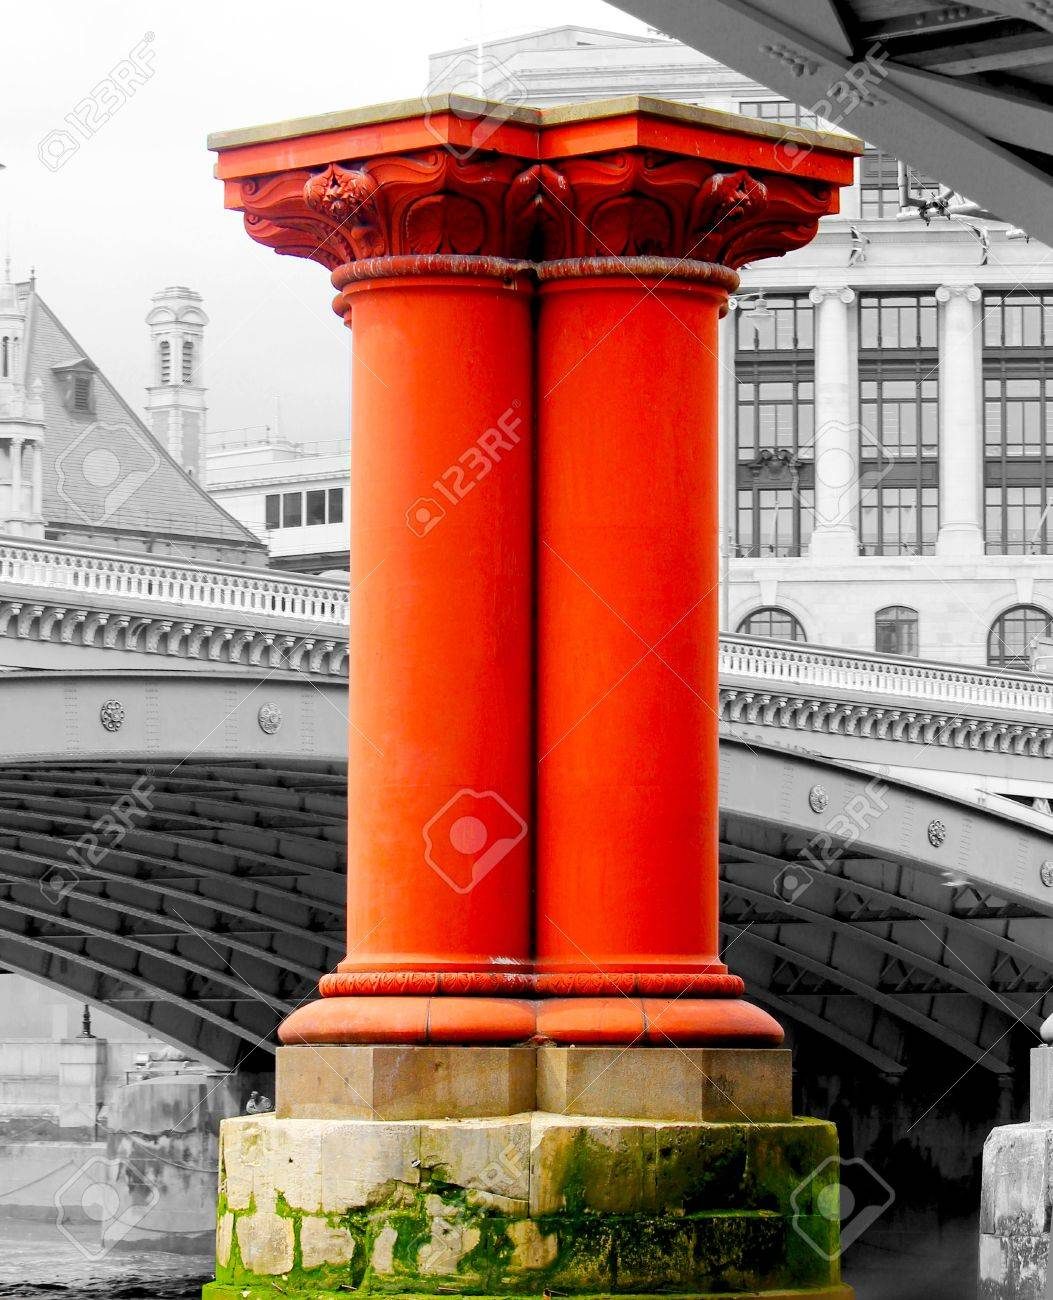 Red pillar on River Thames Stock Photo - 18285242